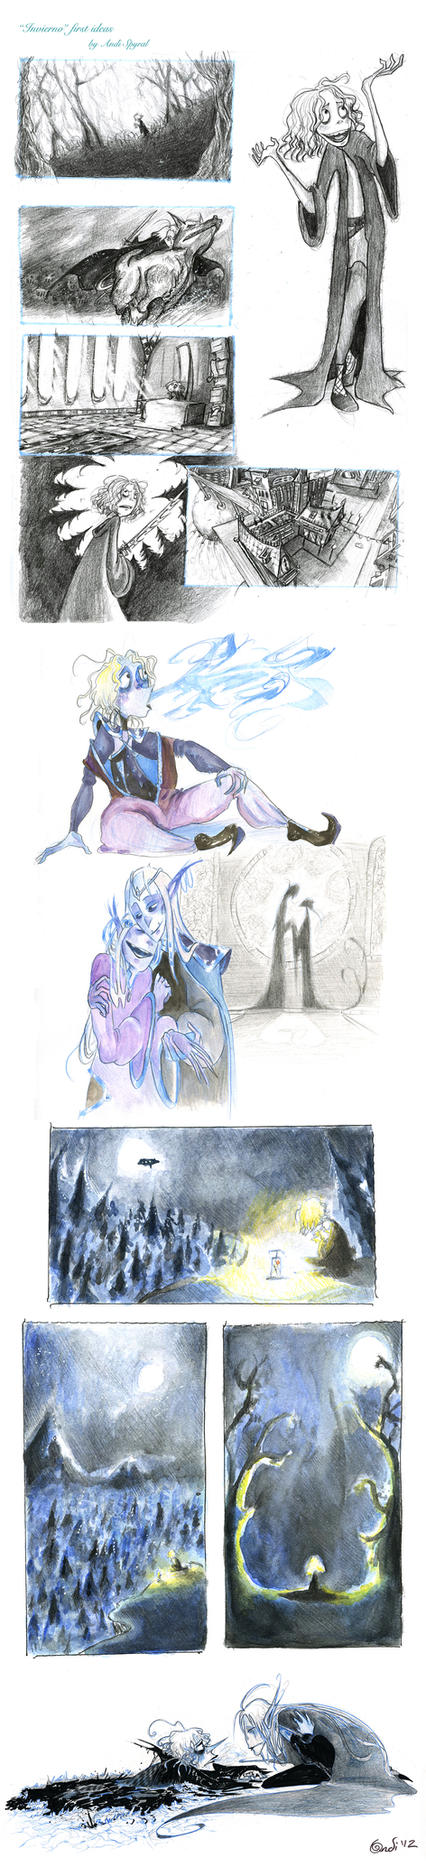 Invierno sketch dump by CountANDRA